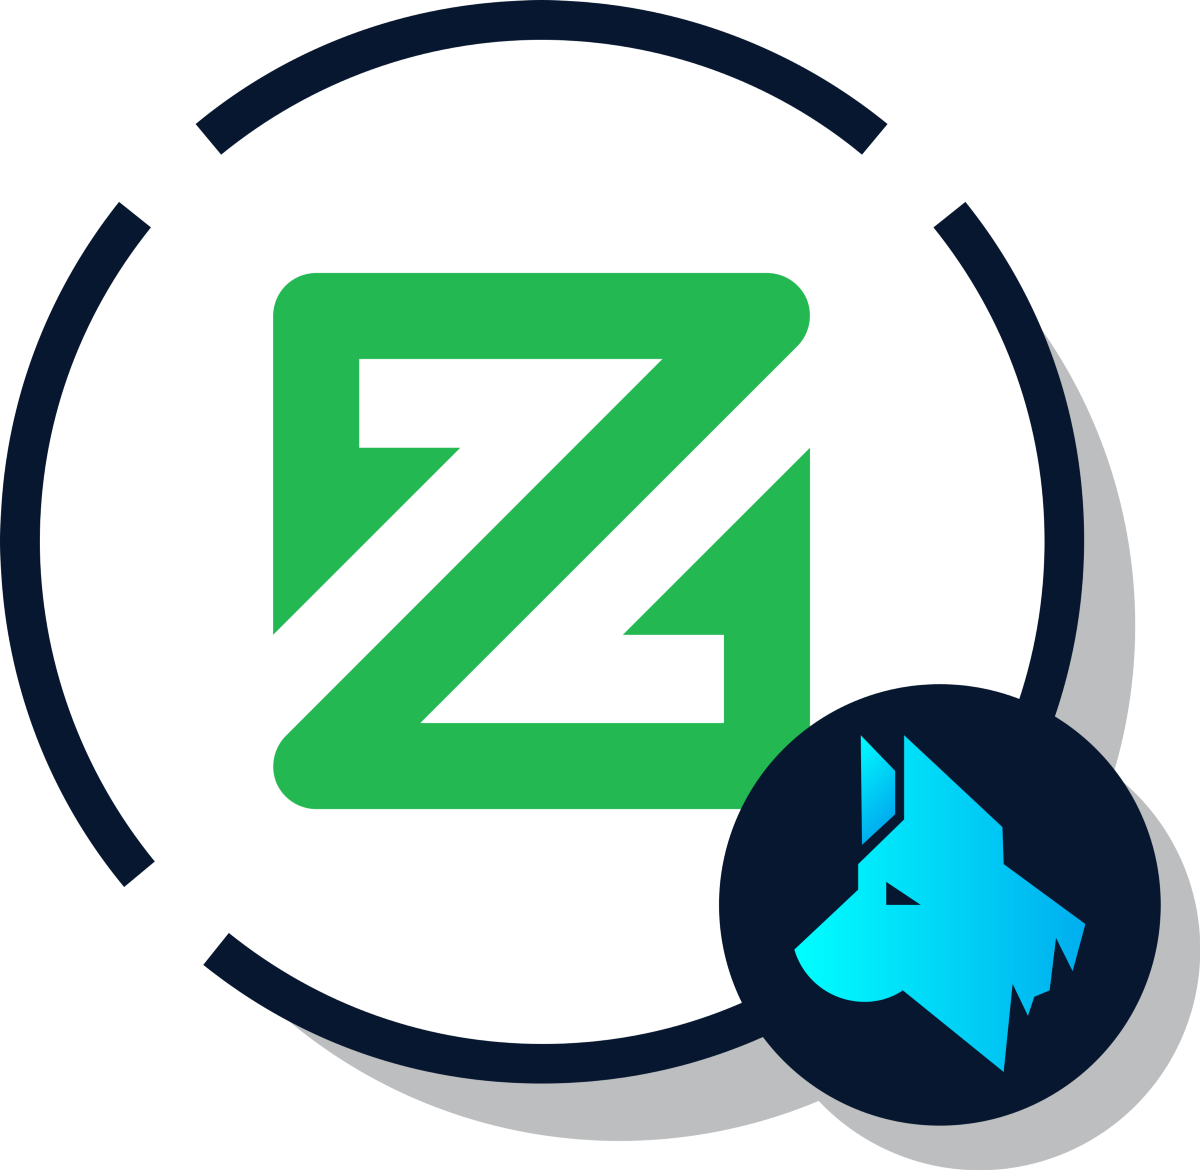 StakeHound has launched its first stakedToken bringing Zcoin to DeFi space